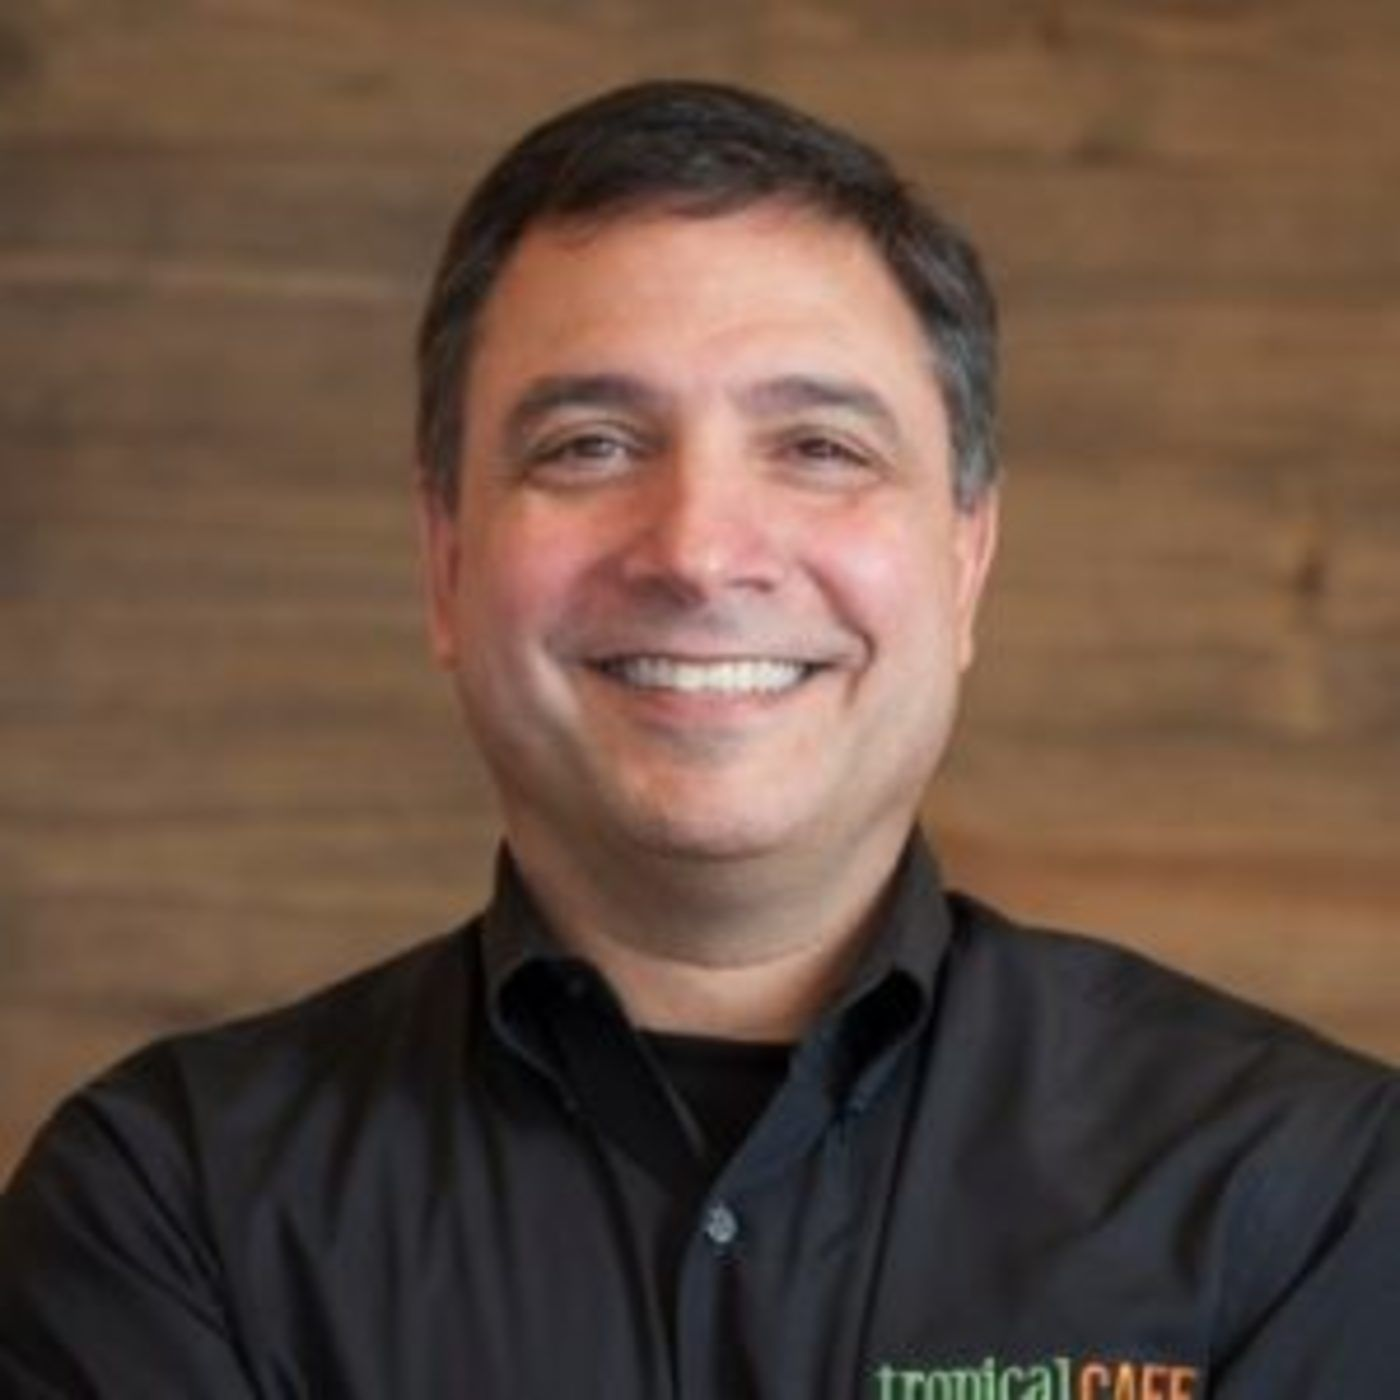 Transform Ignite Disrupt Ep3- Steven L. Blue Interviews Mike Rotondo CEO of Tropical Smoothie Cafe